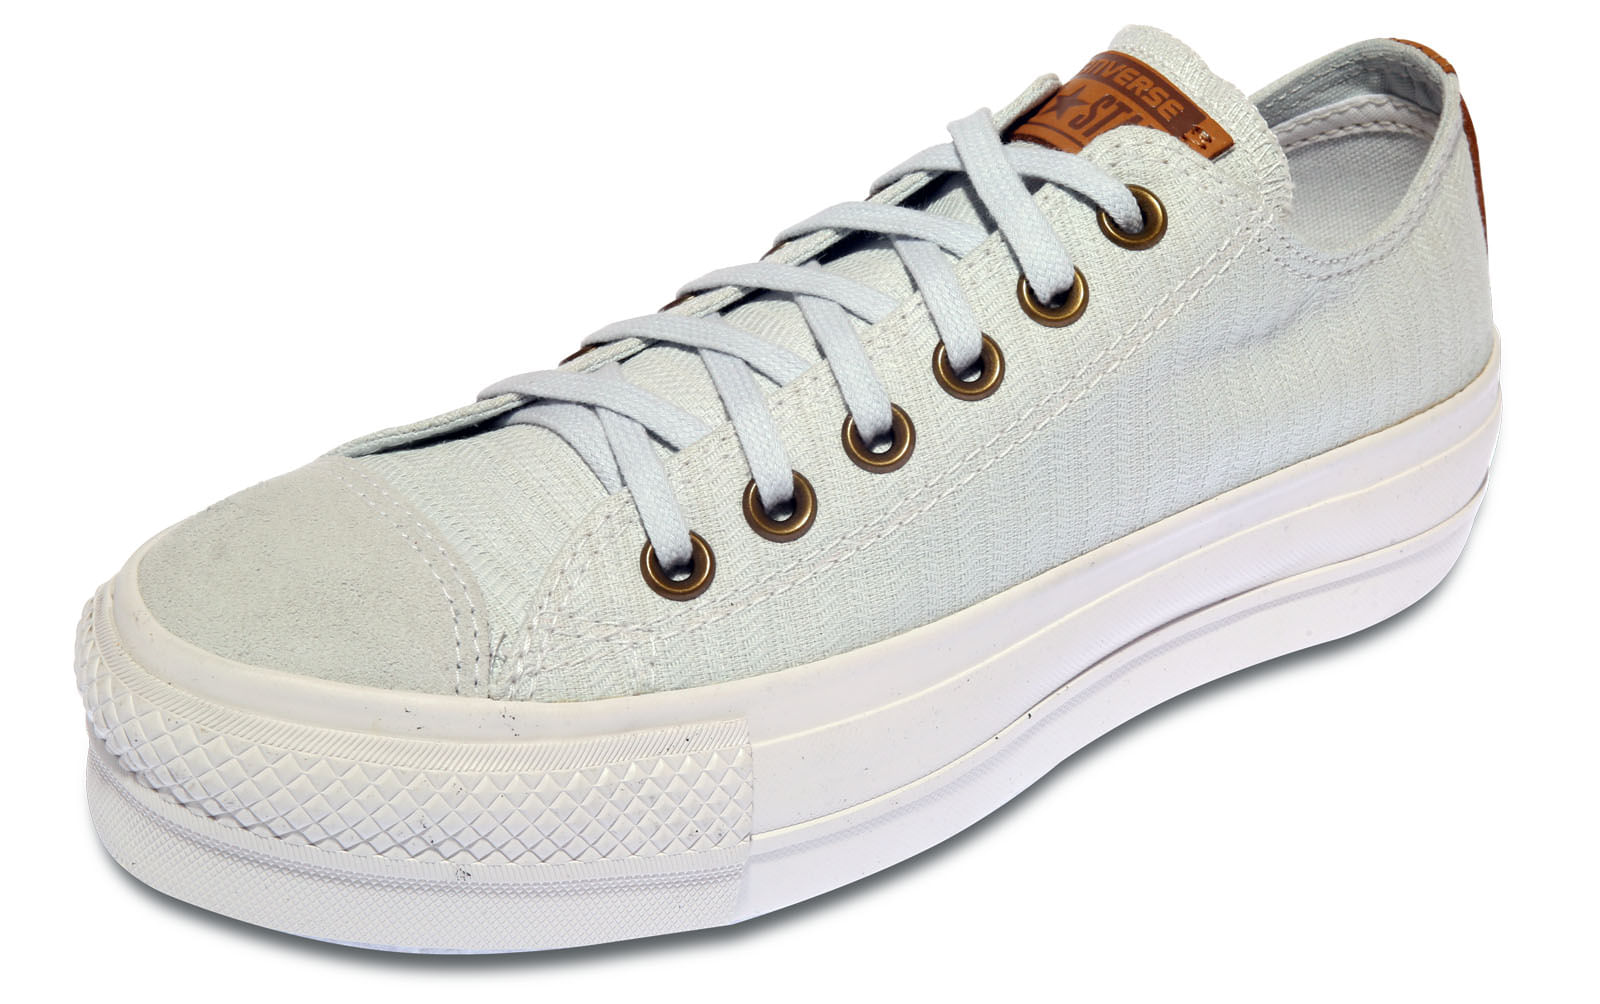 Tenis Converse Chuck Taylor All Star Flatform Cinza - theboxproject 240dd95c85536